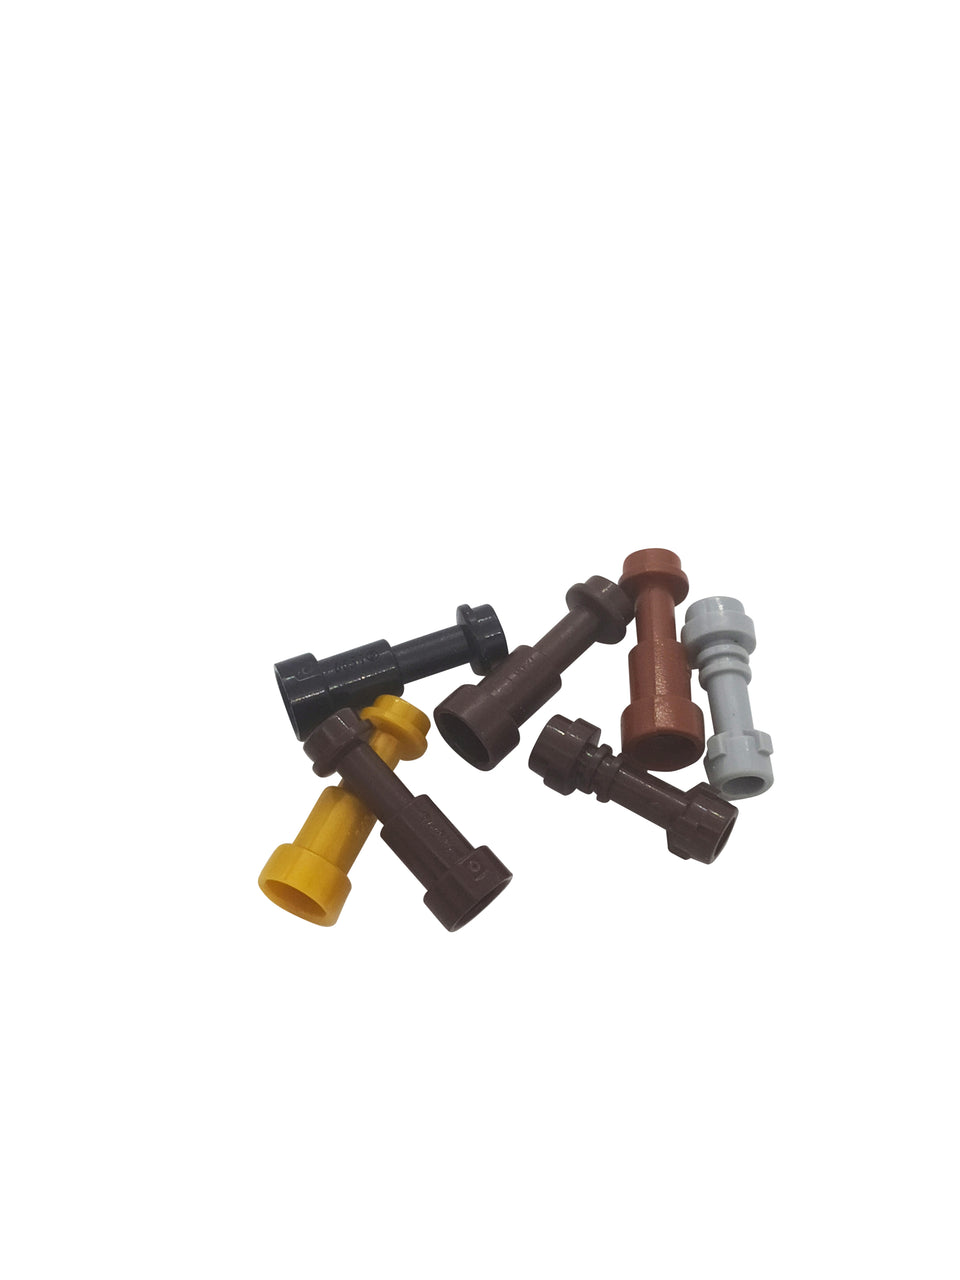 mix of binoculars in all kinds of colors for Lego characters